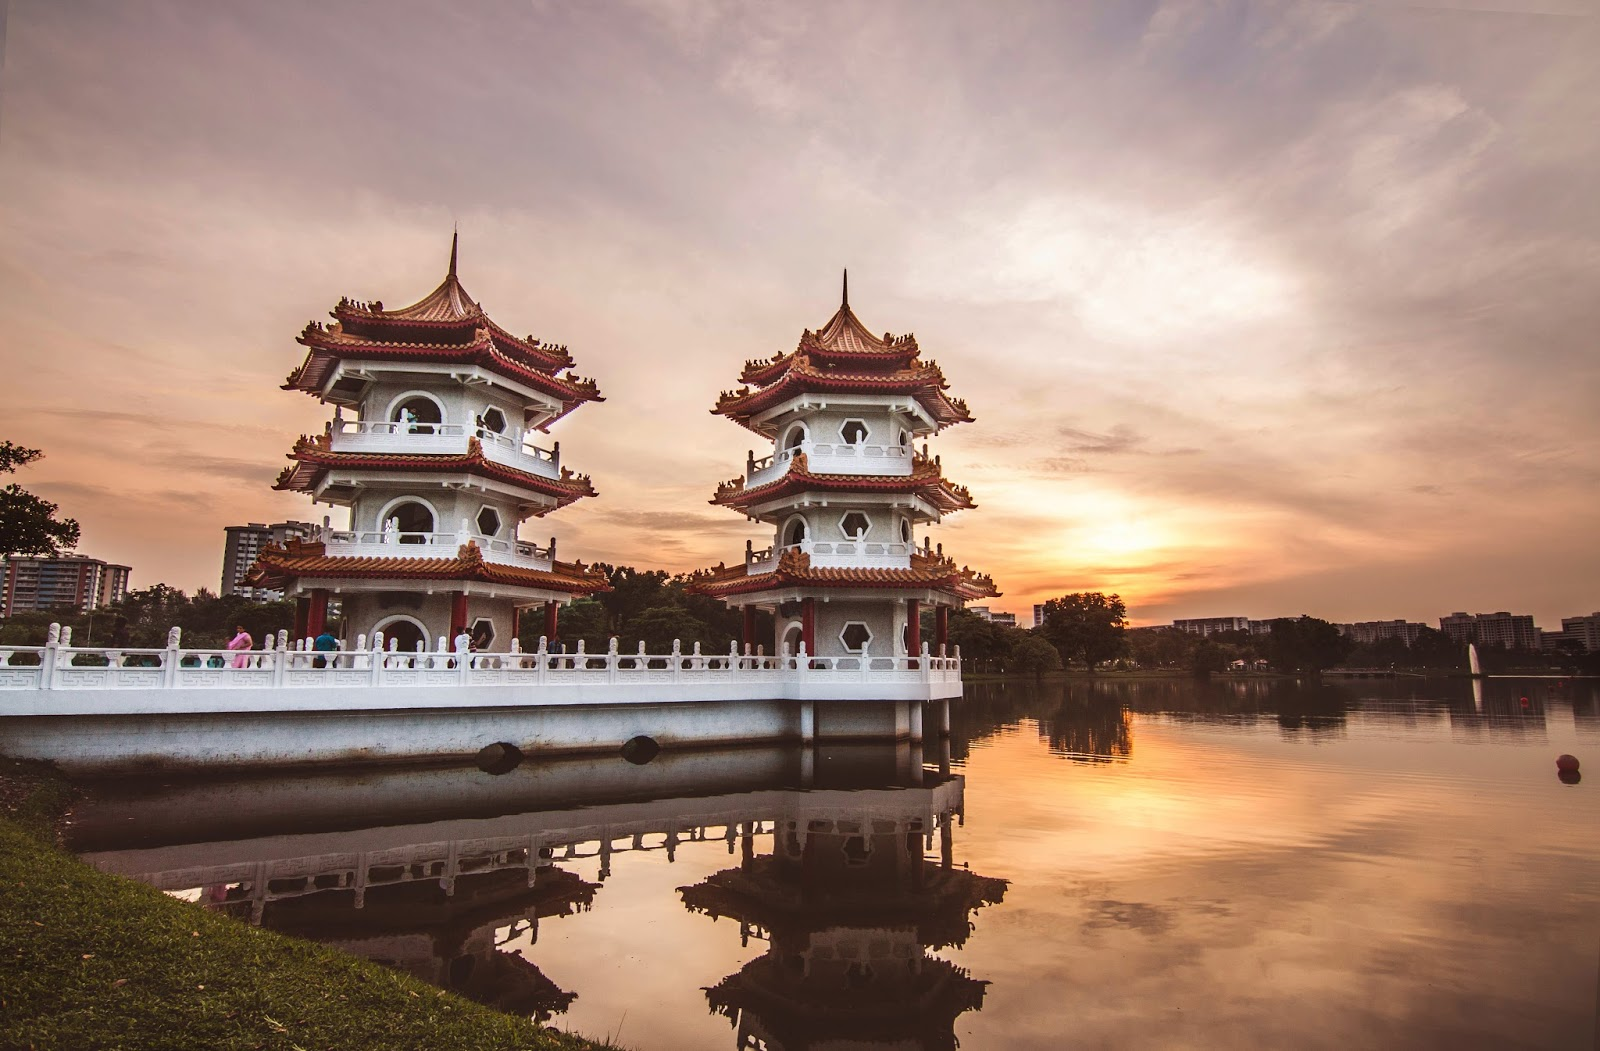 Pagoda in Singapore